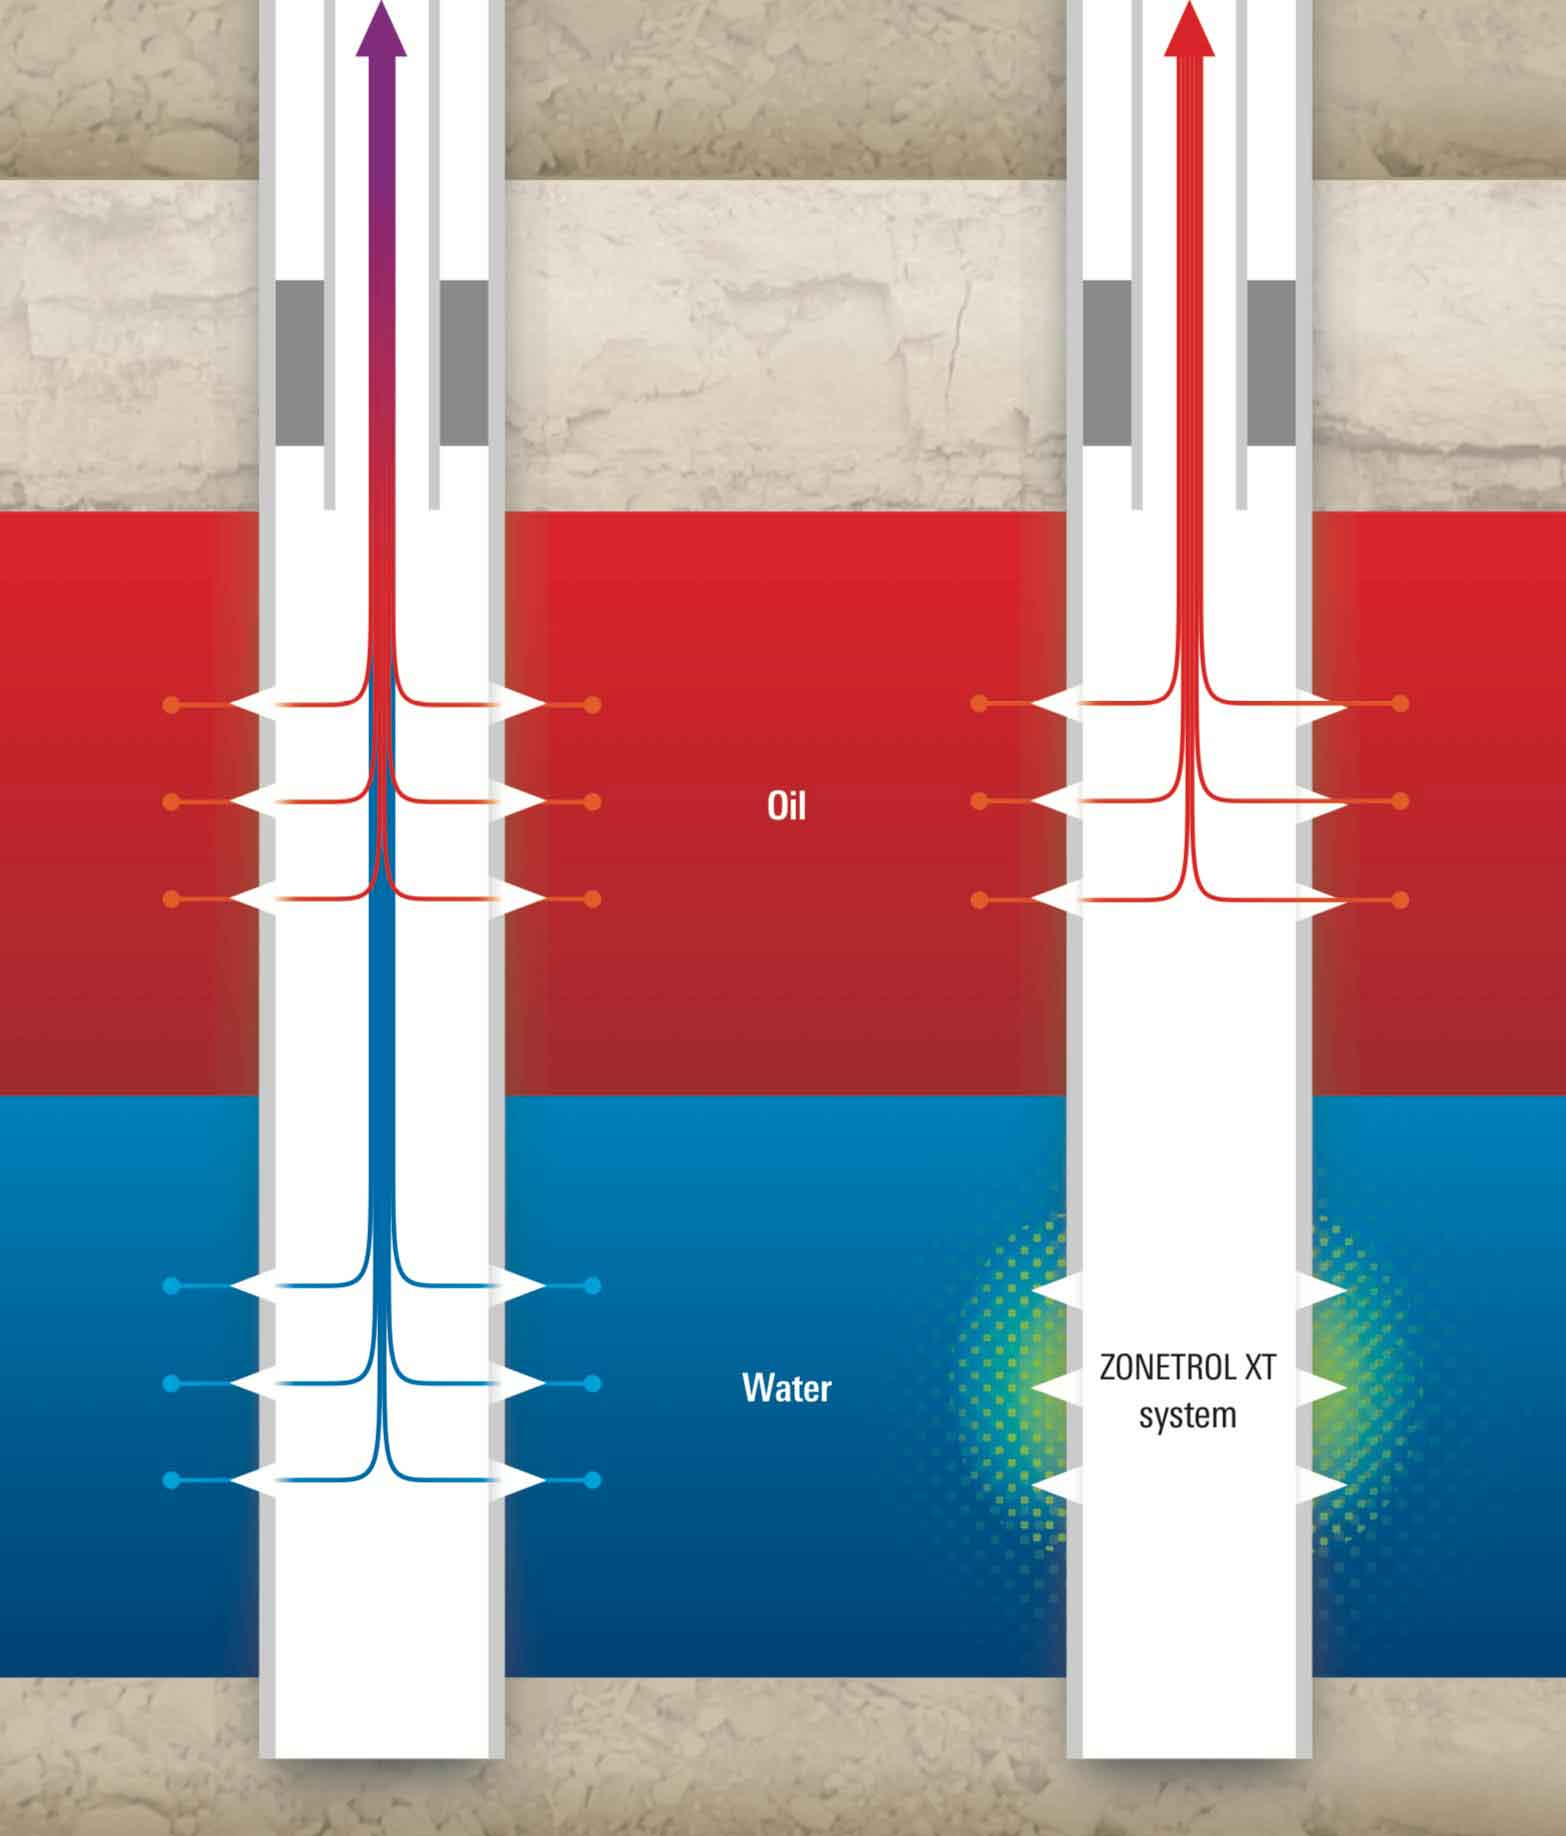 Using the ZONETROL XT system, right, reduces permeability to water while maintaining permeability to oil.